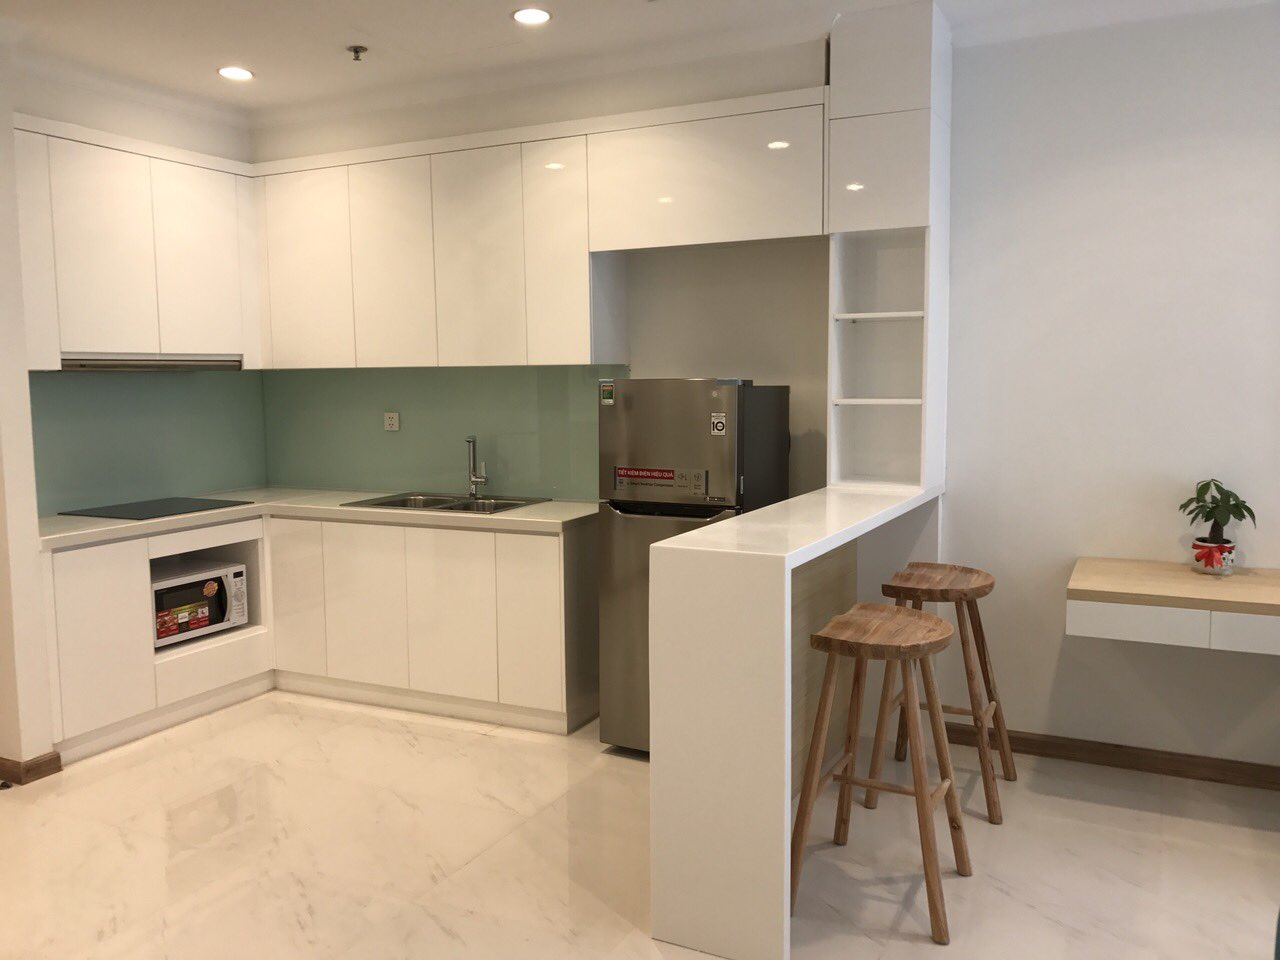 apartment for rent in vinhomes district 2 HCMC  BT1051165(6)